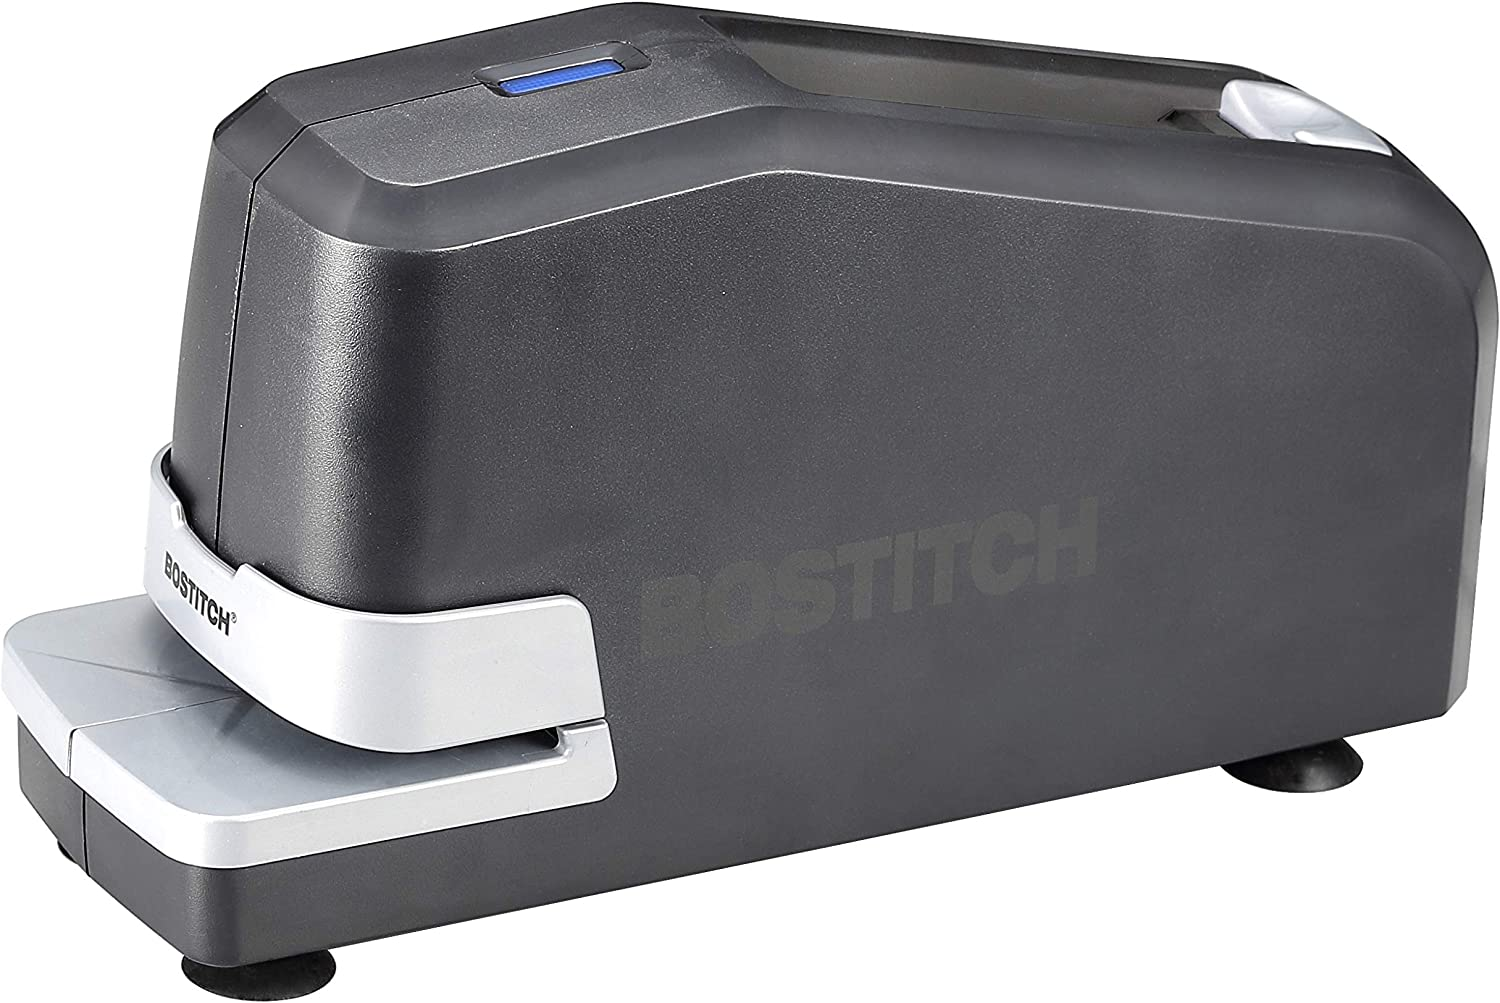 Bostitch Impulse 30 Electric Stapler, 30 Sheet Capacity, Black : Electric Stapler : Office Products